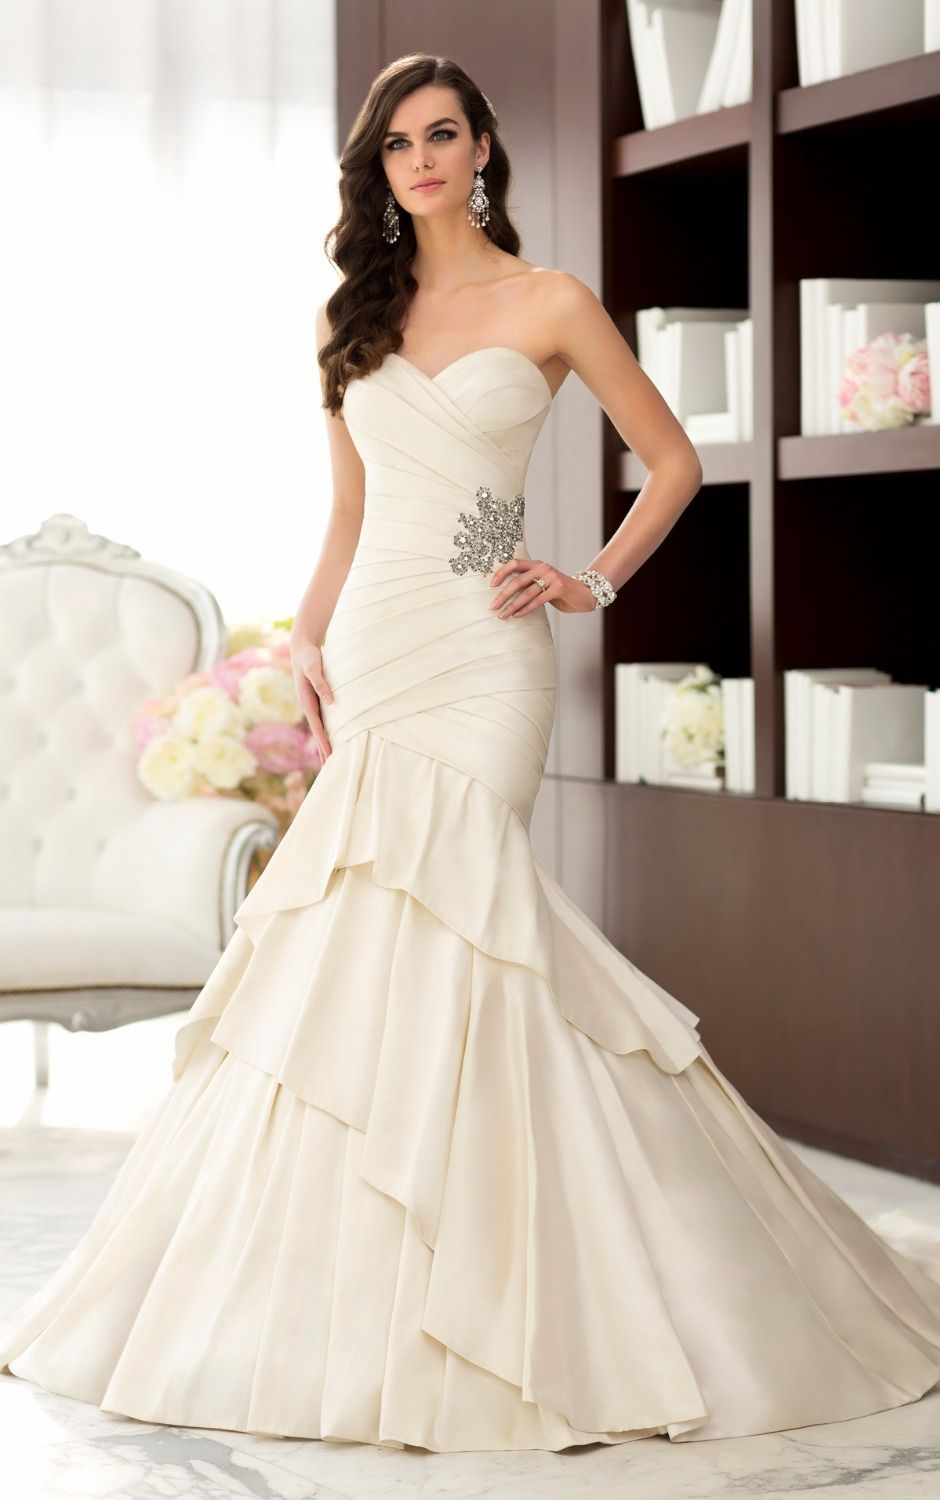 Layers and layers of Luxe Taffeta are the hallmark of this designer wedding dress. The body-hugging bodice features a sweetheart - http://www.aliexpress.com/item/Layers-and-layers-of-Luxe-Taffeta-are-the-hallmark-of-this-designer-wedding-dress-The-body-hugging-bodice-features-a-sweetheart/32229052993.html